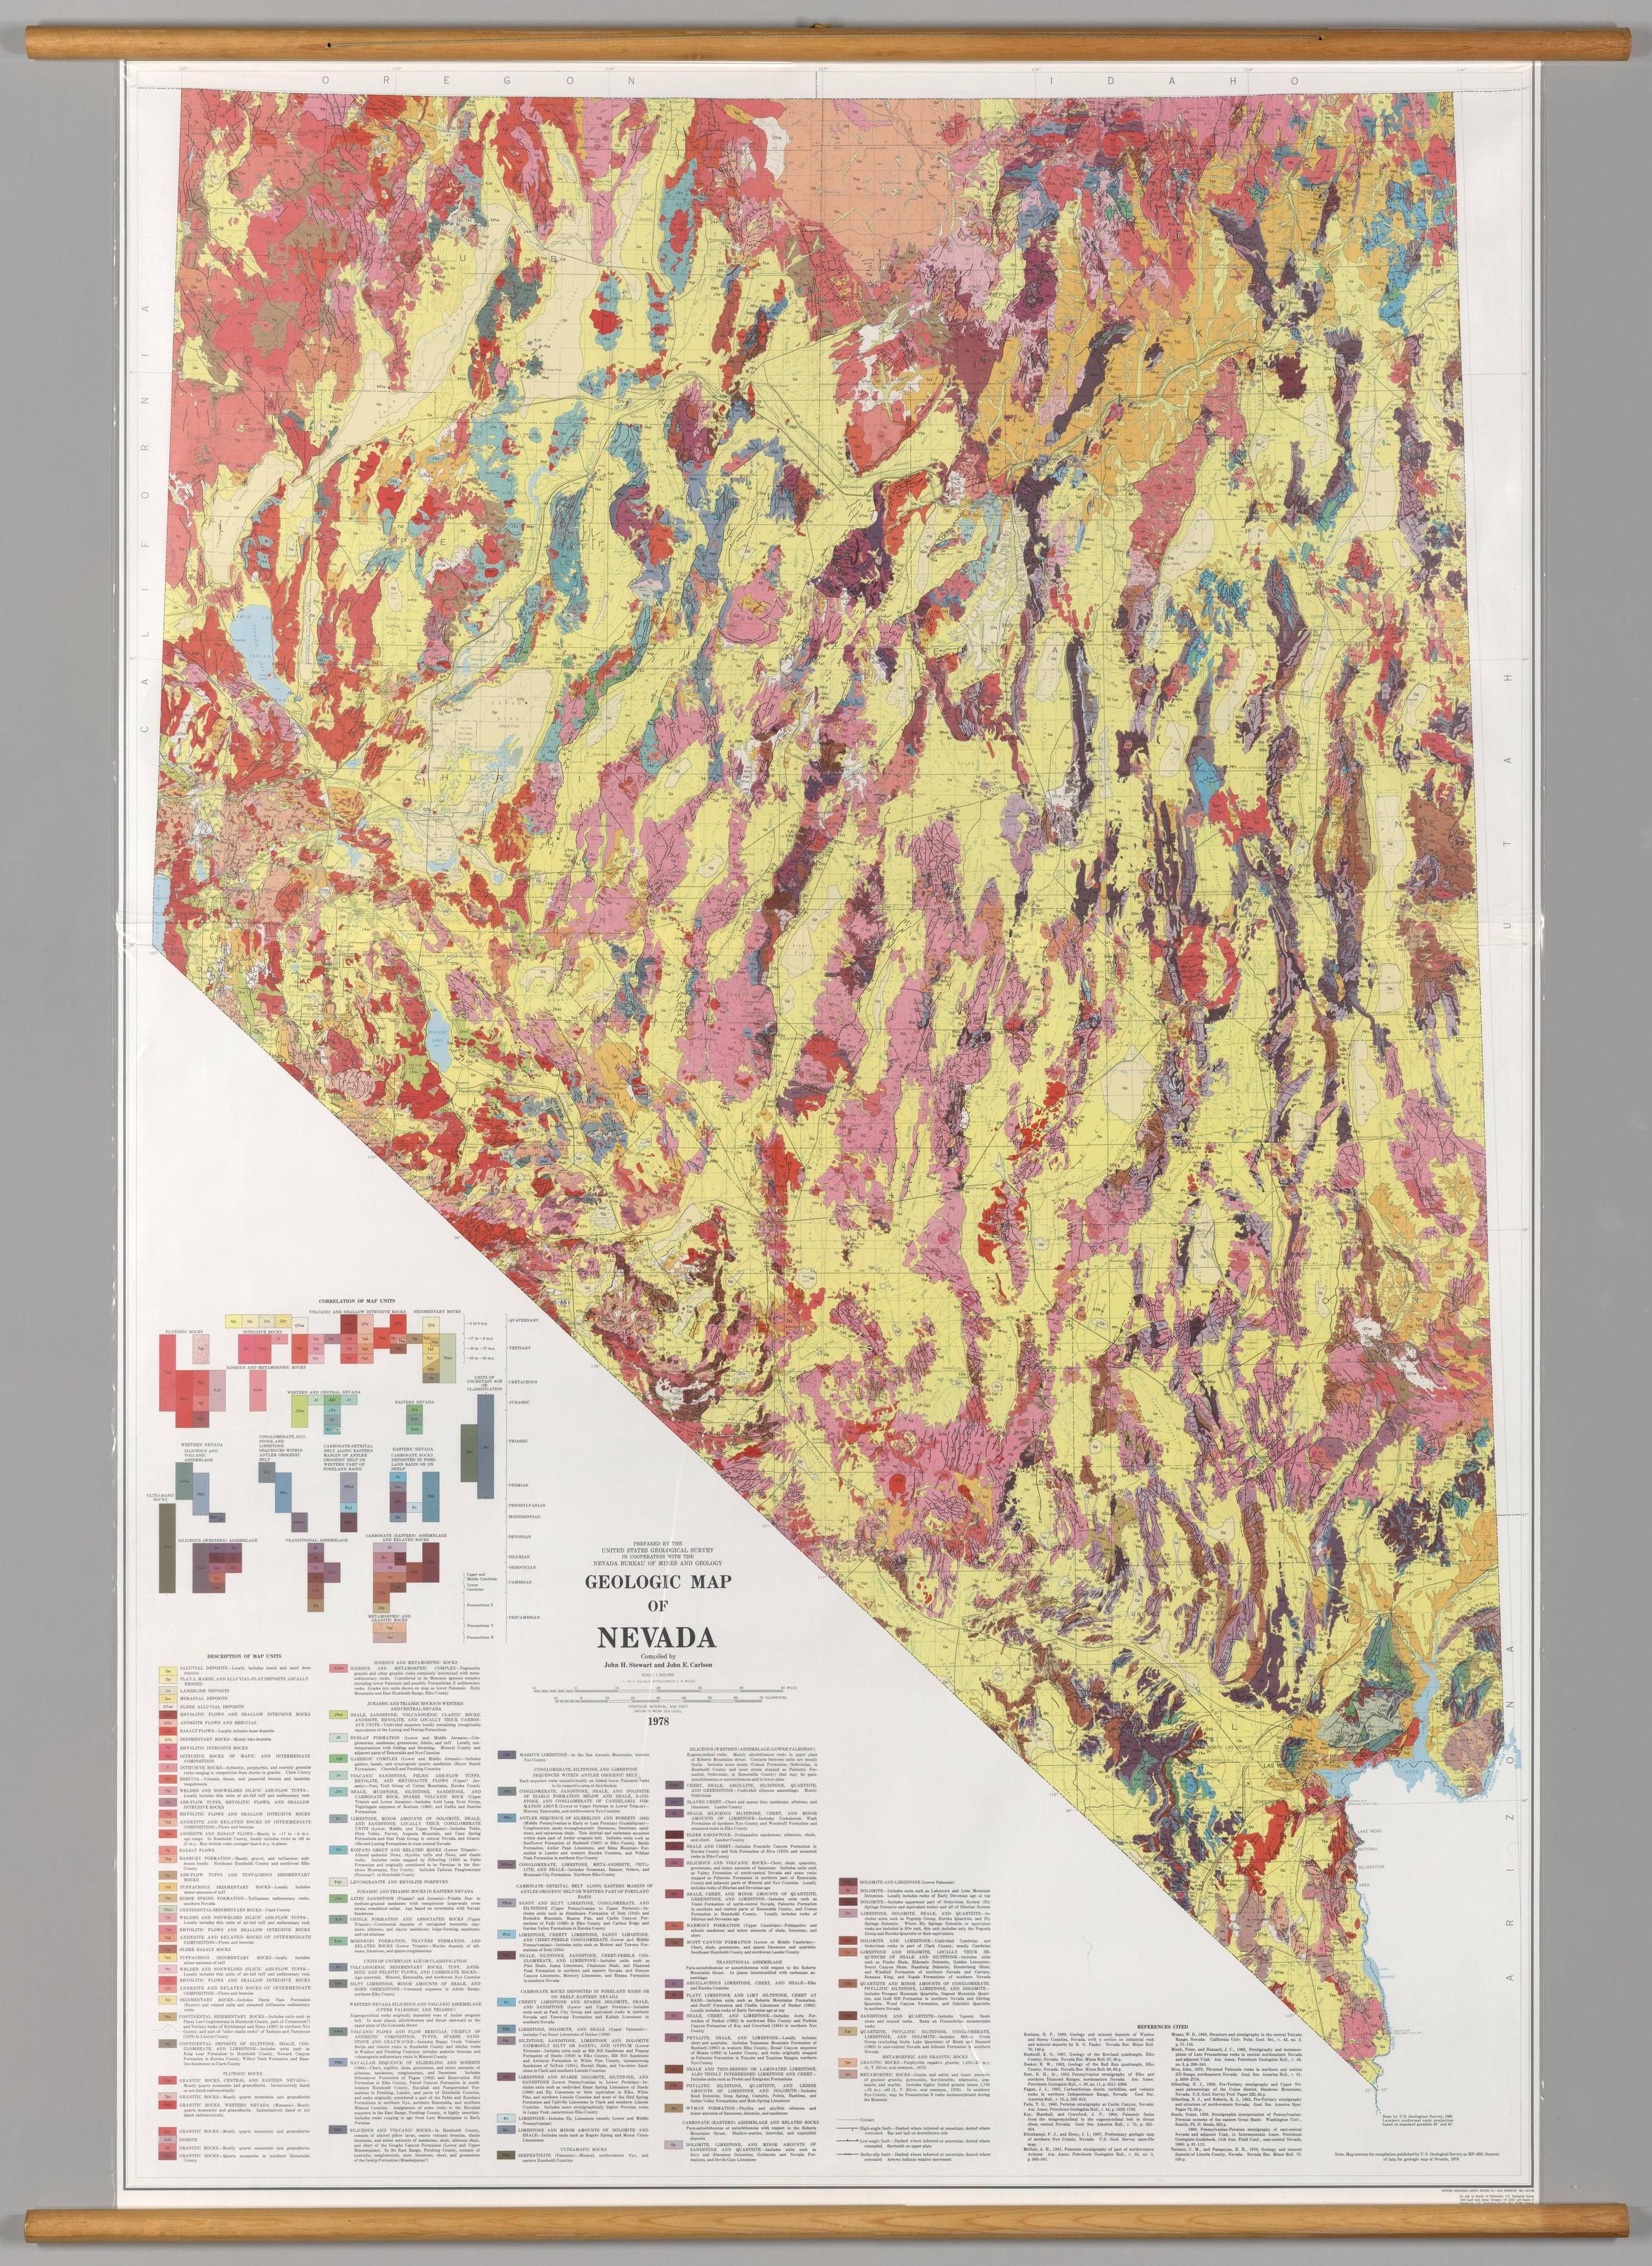 Geologic map of Nevada, 1978 #map #nevada | Maps ... on leviathan cave nevada, large map of nevada, blank map of nevada, satellite map of nevada, driving map of nevada, map of fernley nevada, political map of nevada, map of california and nevada, topographic map of nevada, show me a map texas, us map showing nevada, geologic map of nevada, map of tonopah nevada, printable map of nevada,